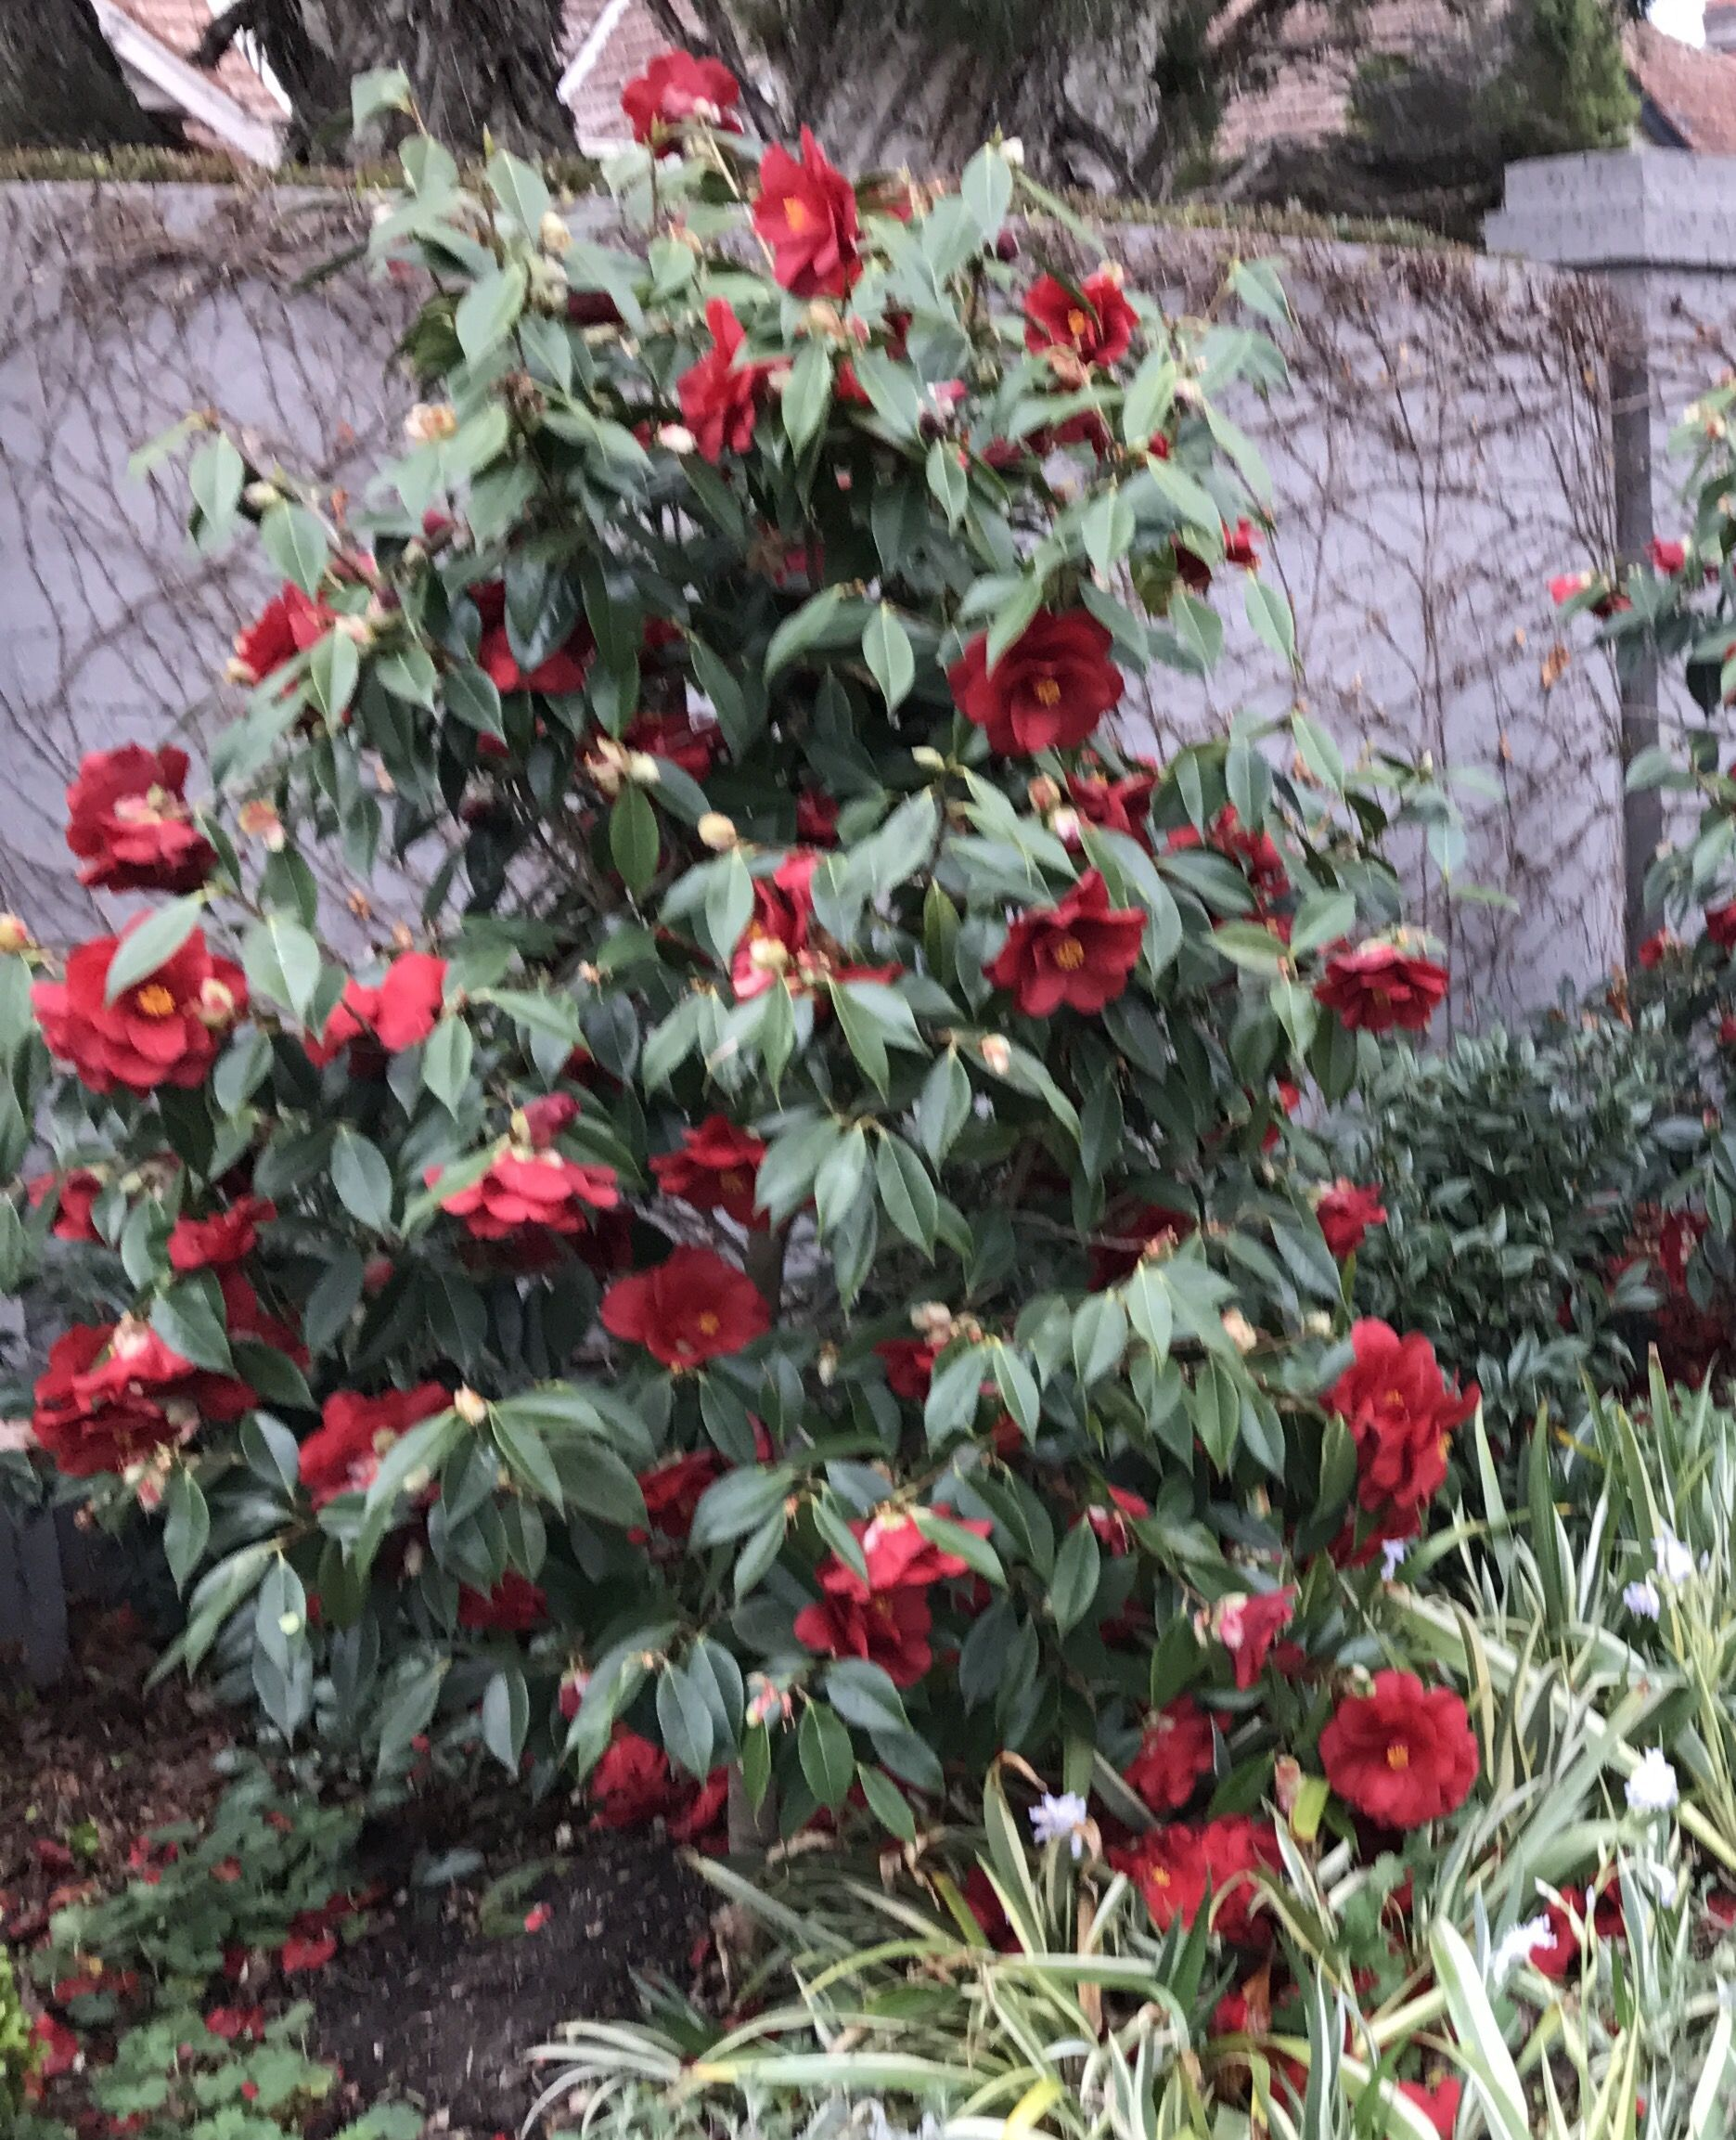 Camellia Japonica Royal Velvet Vigorous Upright Growth To 3M, Large